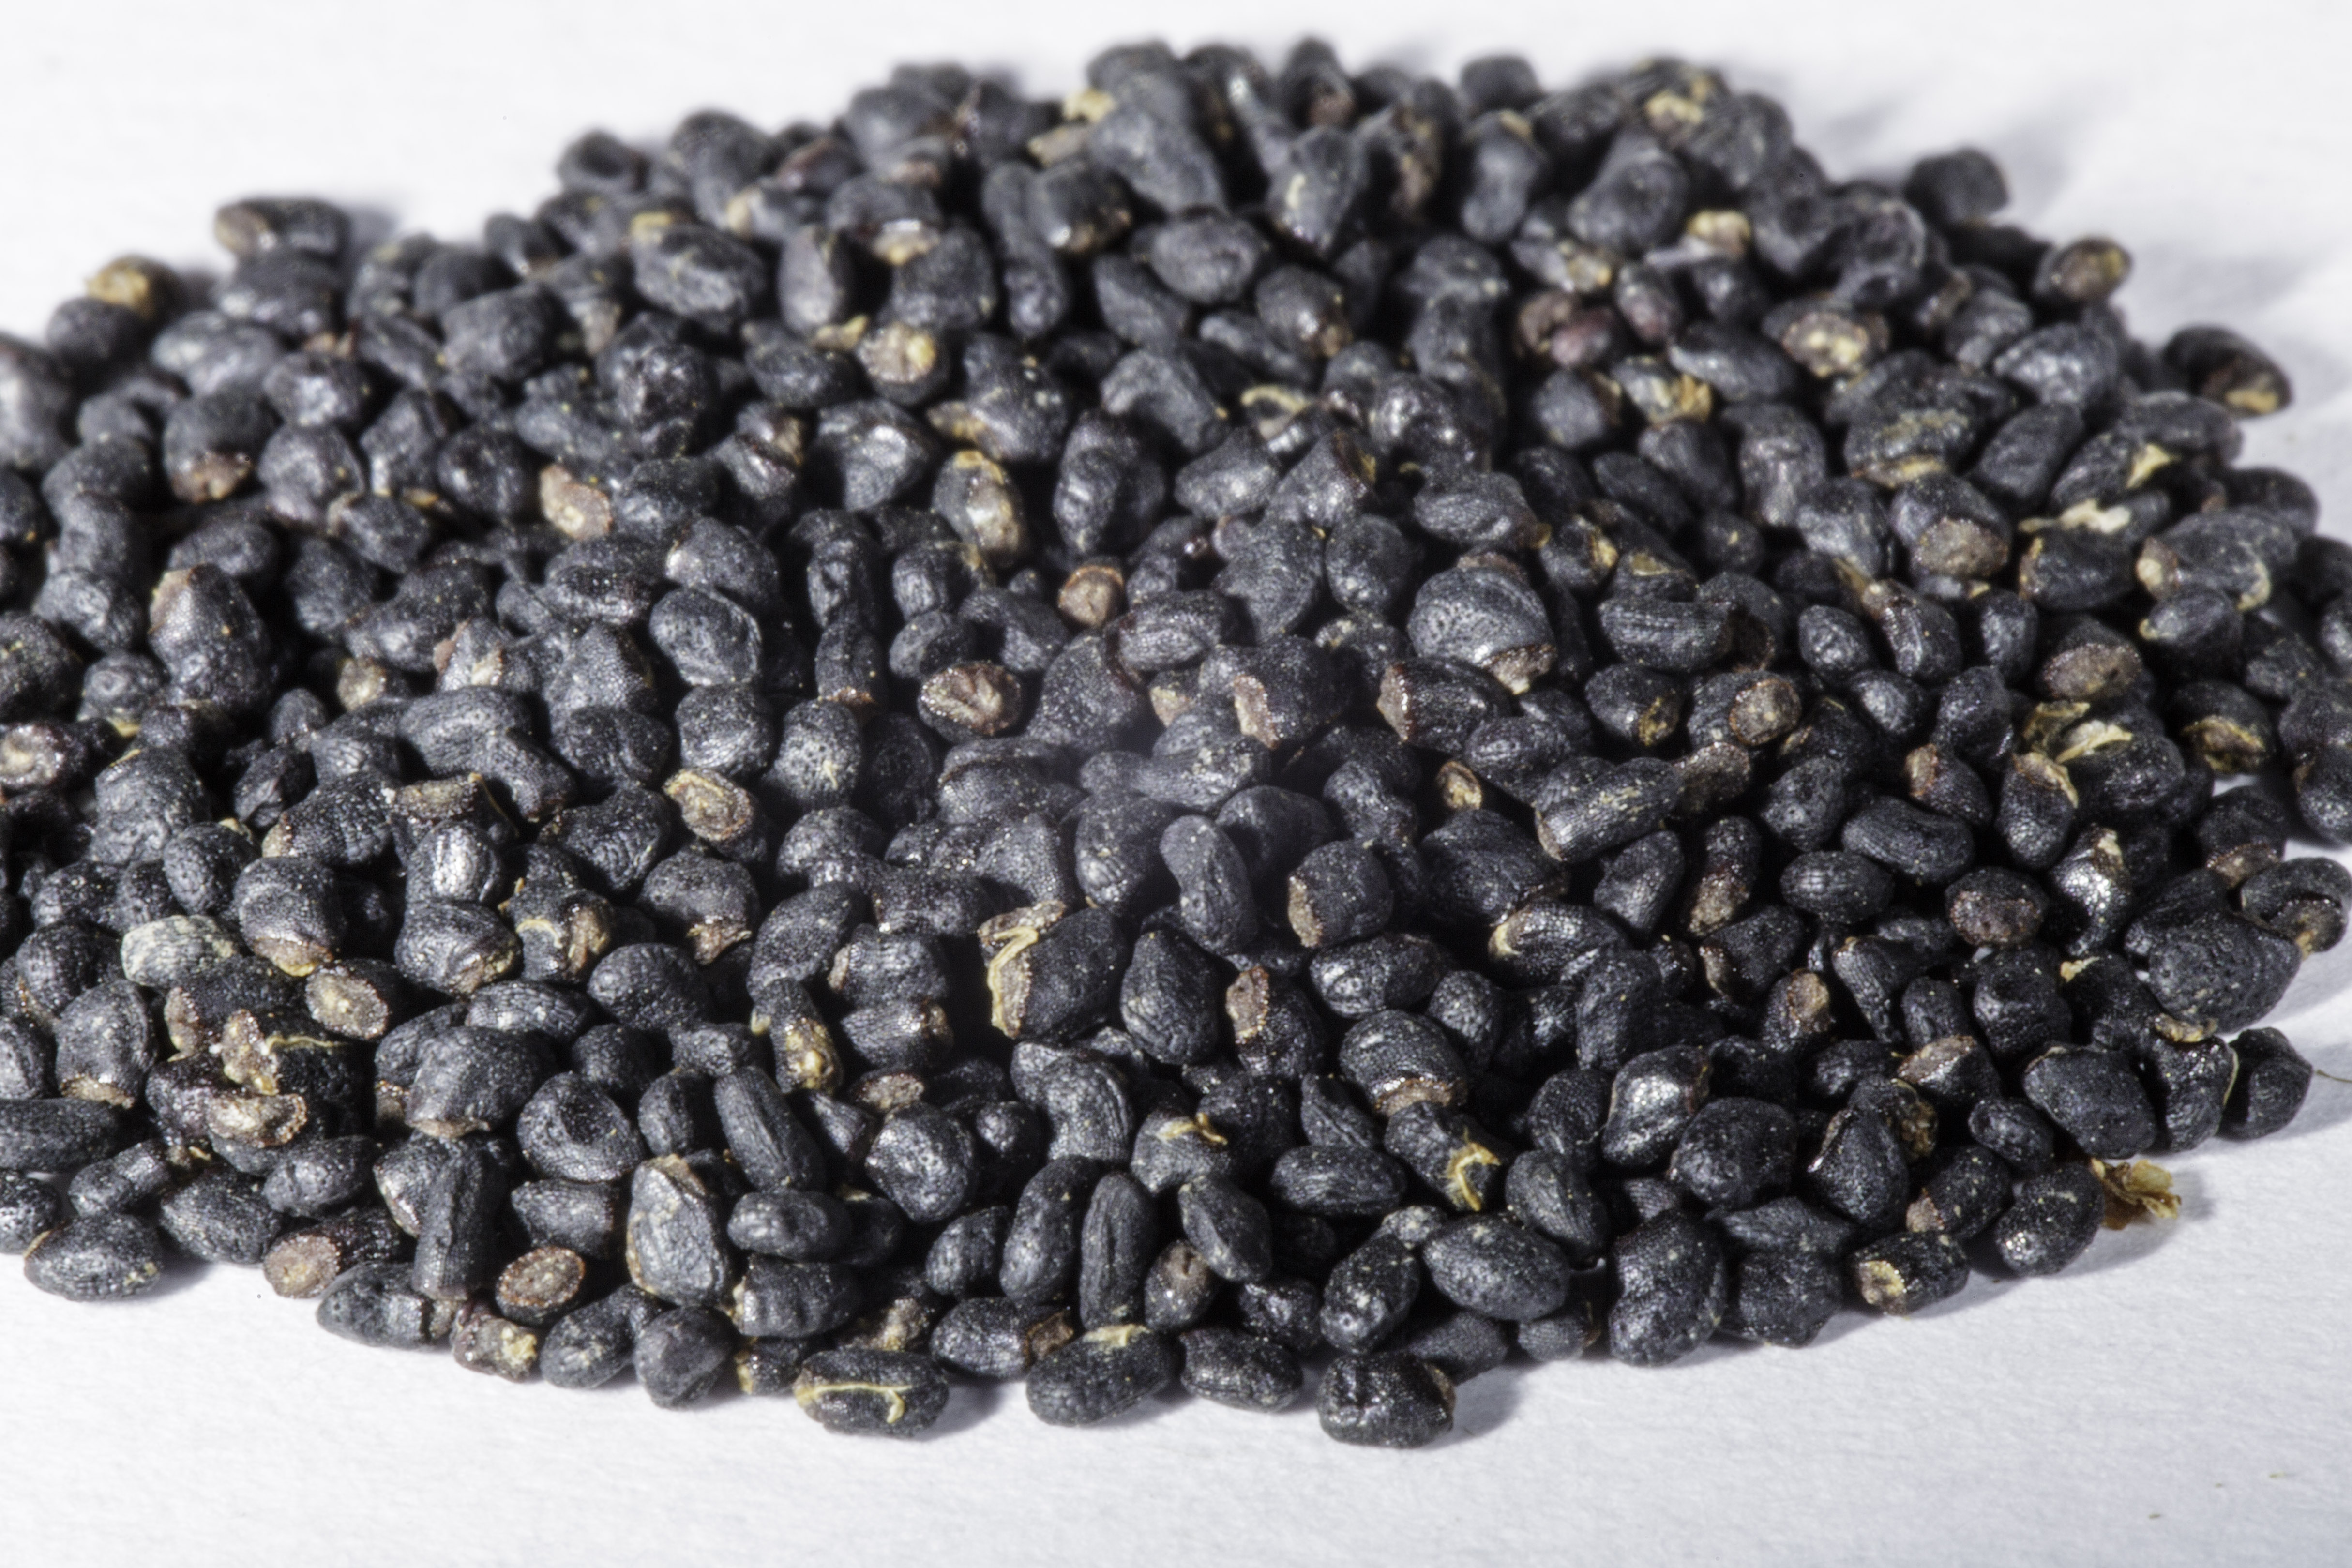 An angled front view of a small pile of Trichocereus pachanoi (San Pedro) seeds.